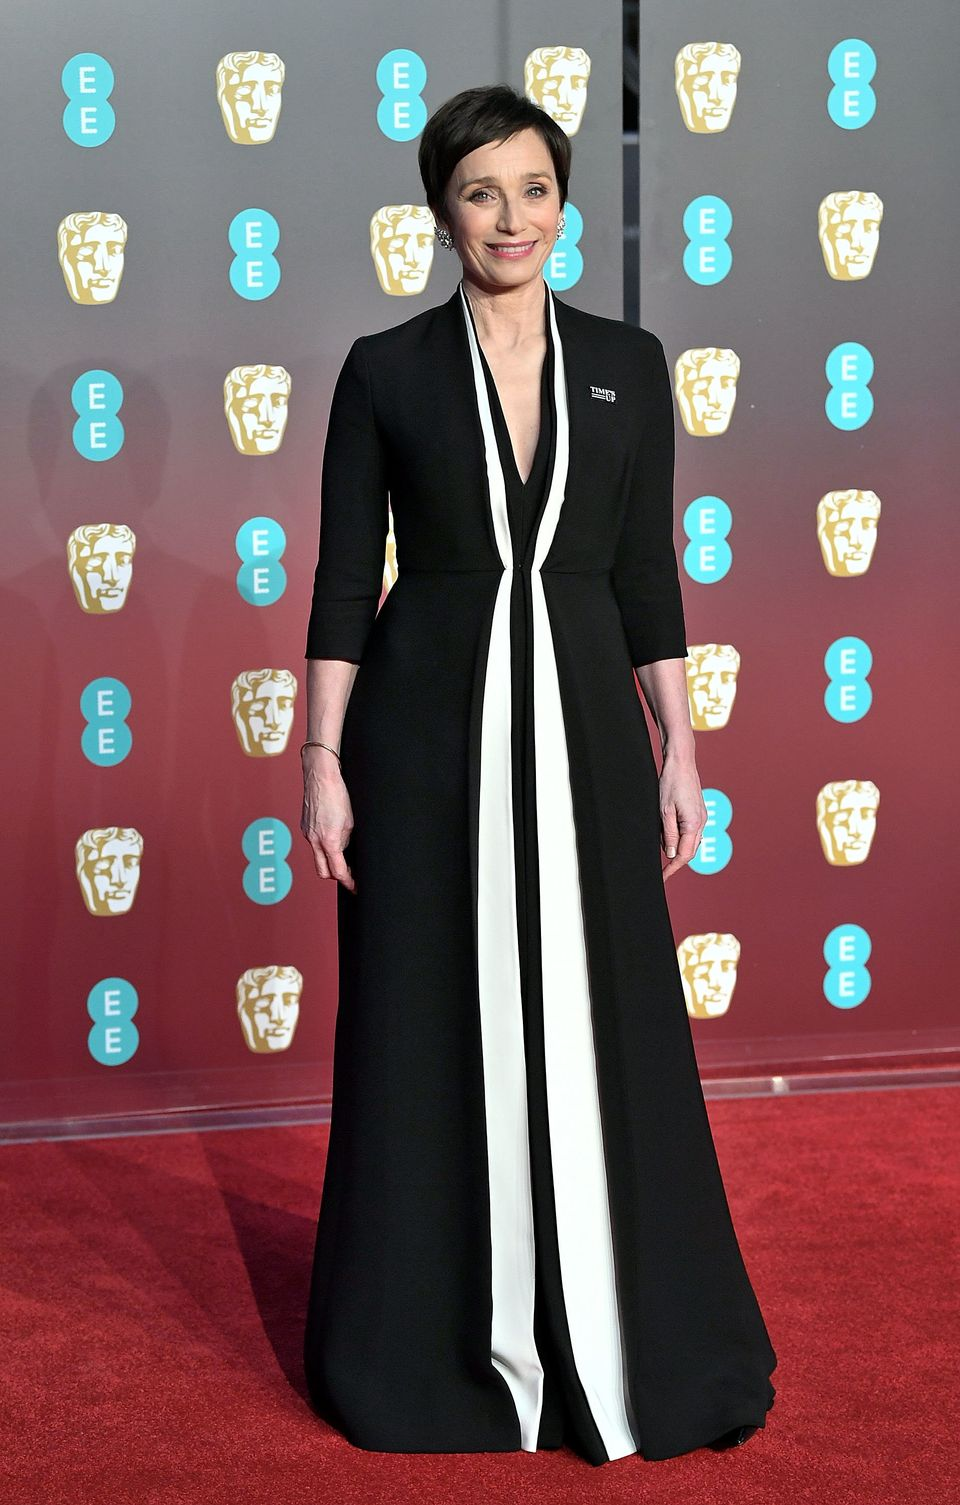 Baftas 2018: Letitia Wright And Natalie Dormer Lead The Black Dress Protest On The Red